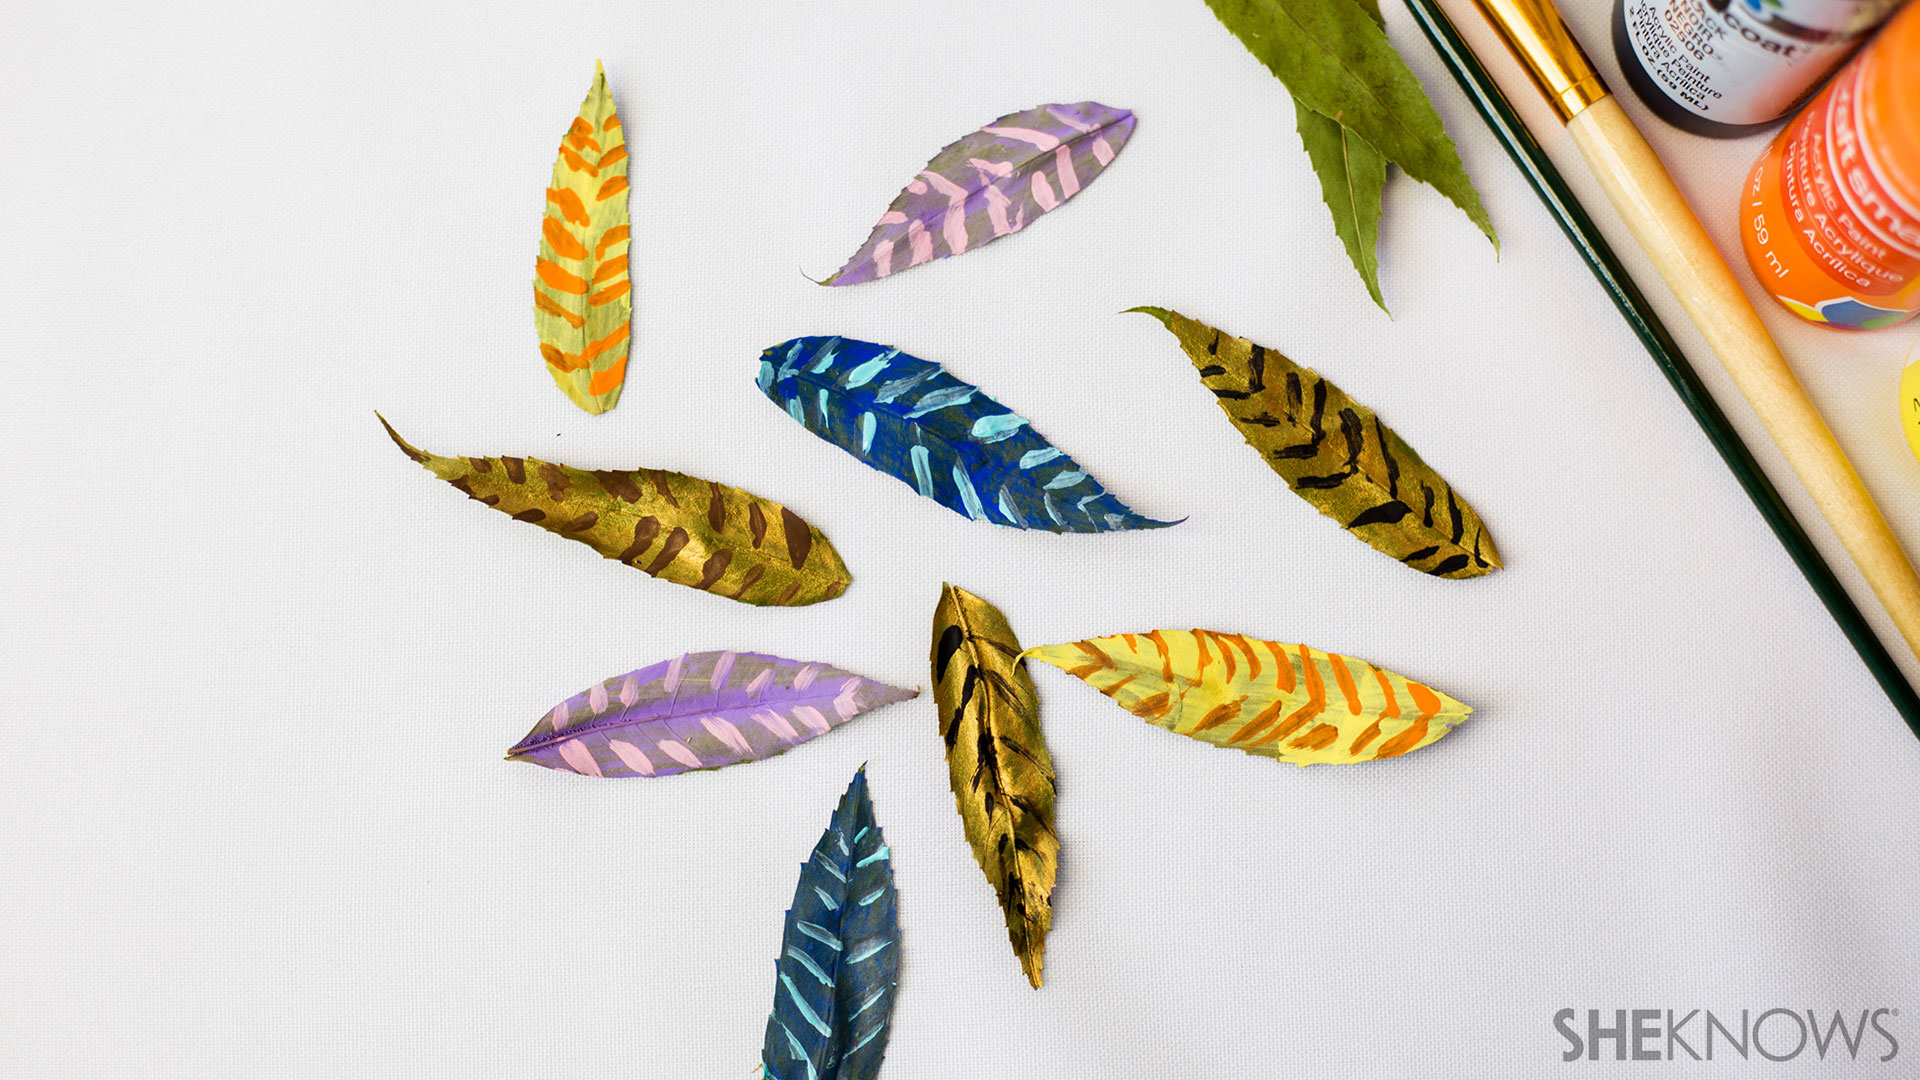 Leaft feather craft | Sheknows.com